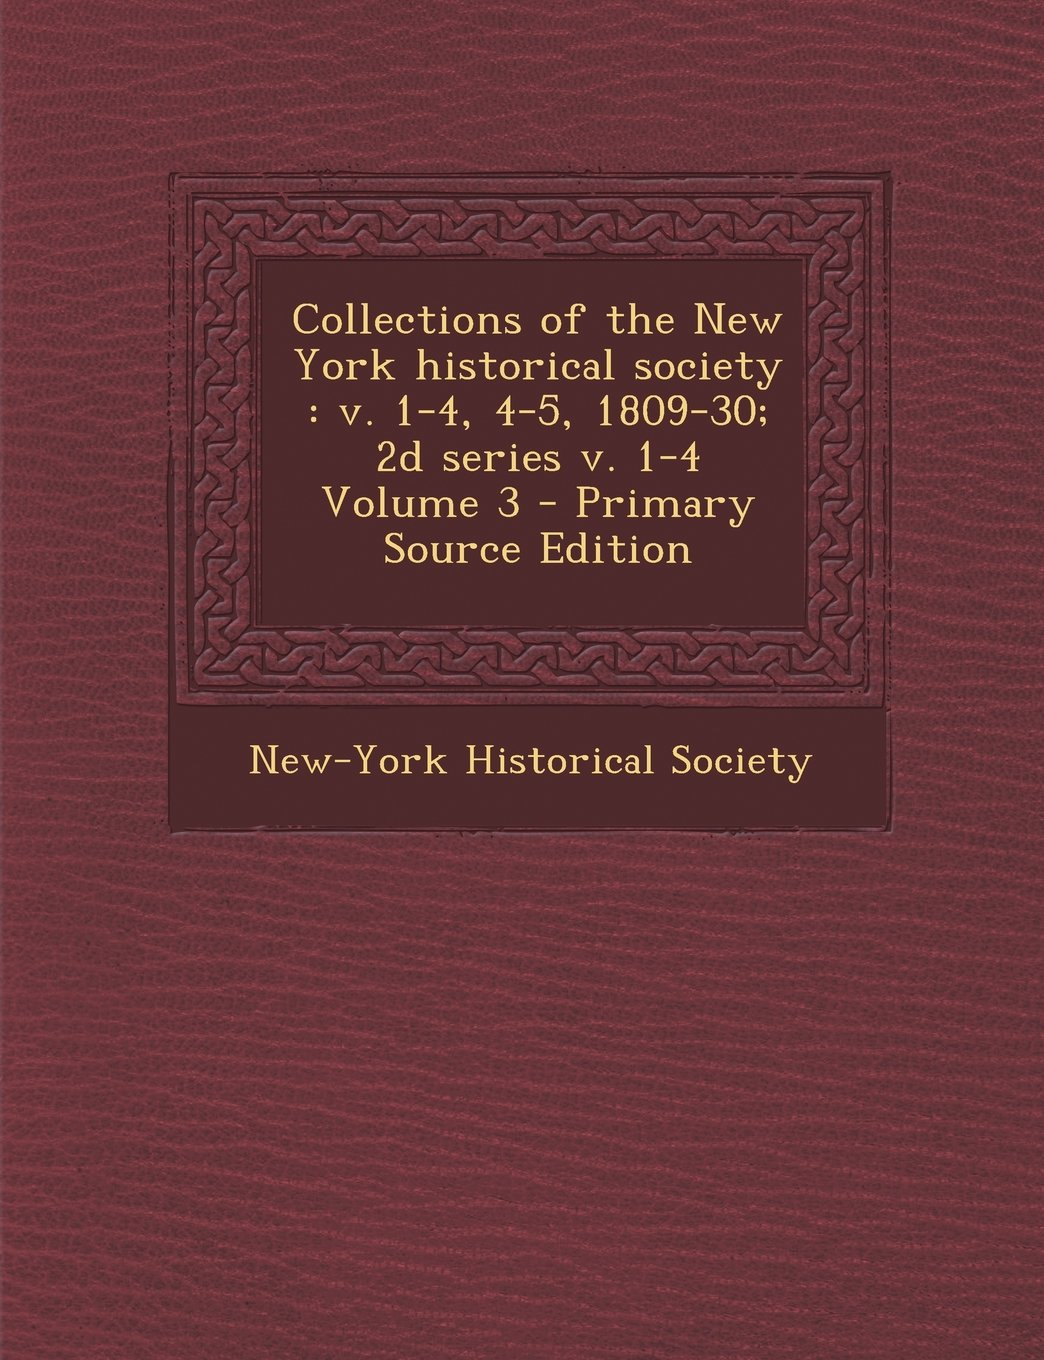 Collections of the New York Historical Society: V. 1-4, 4-5, 1809-30; 2D Series V. 1-4 Volume 3 - Primary Source Edition pdf